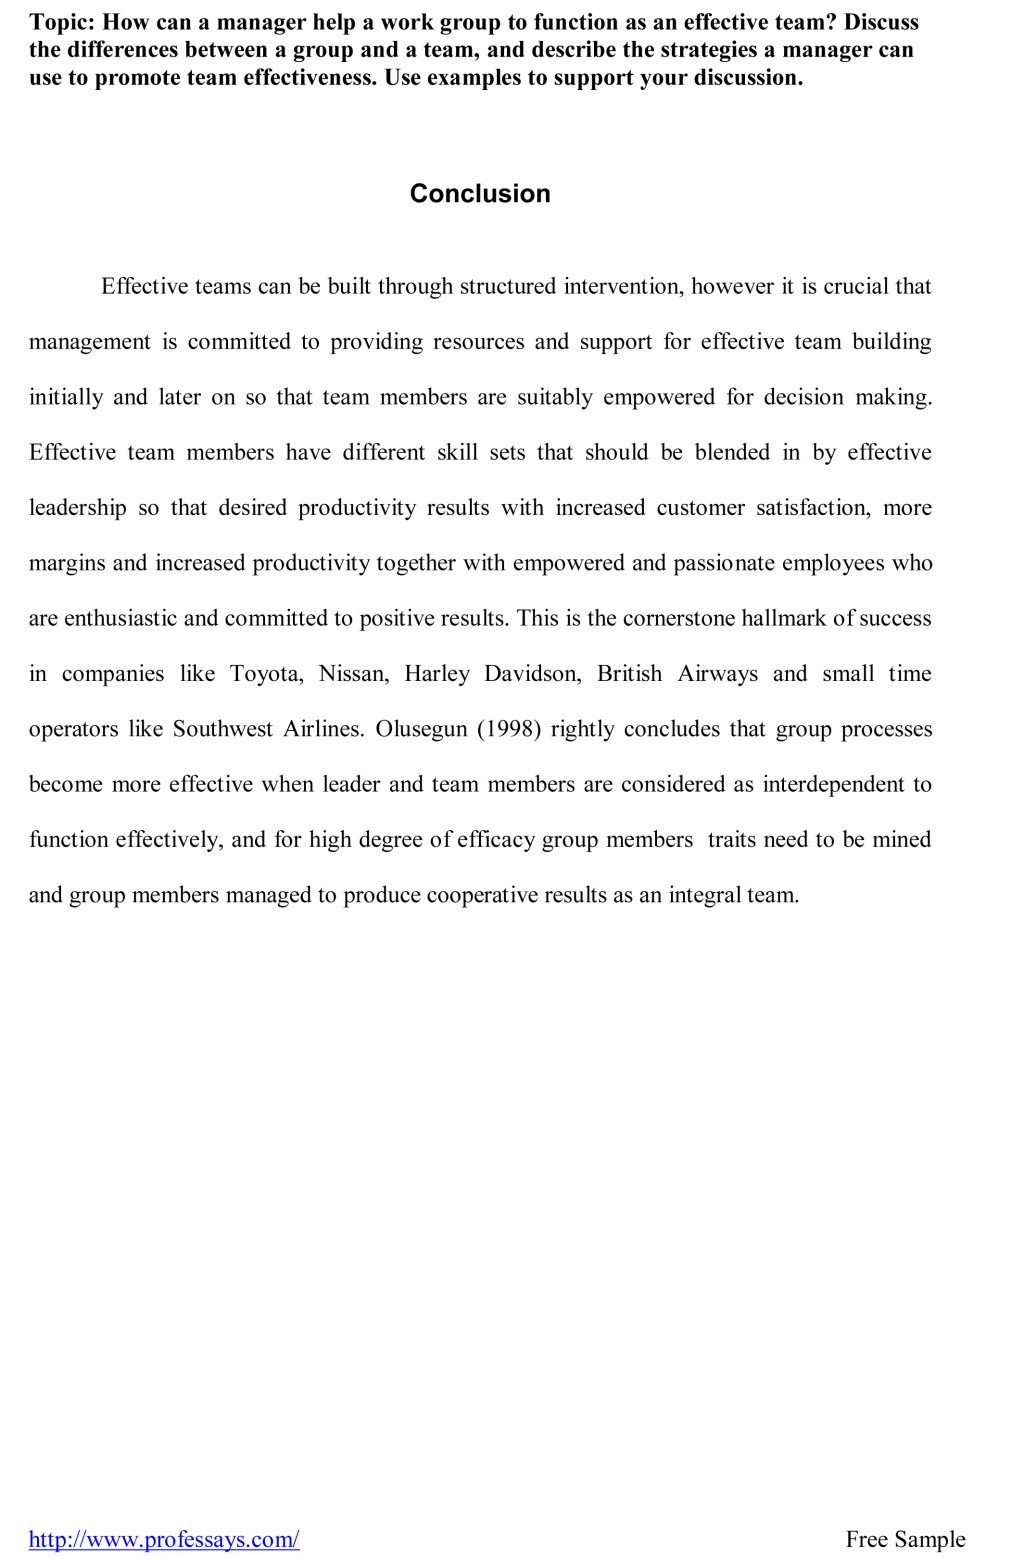 006 Need Help Writing Research Paper Conclusion Sample For Rare My Large